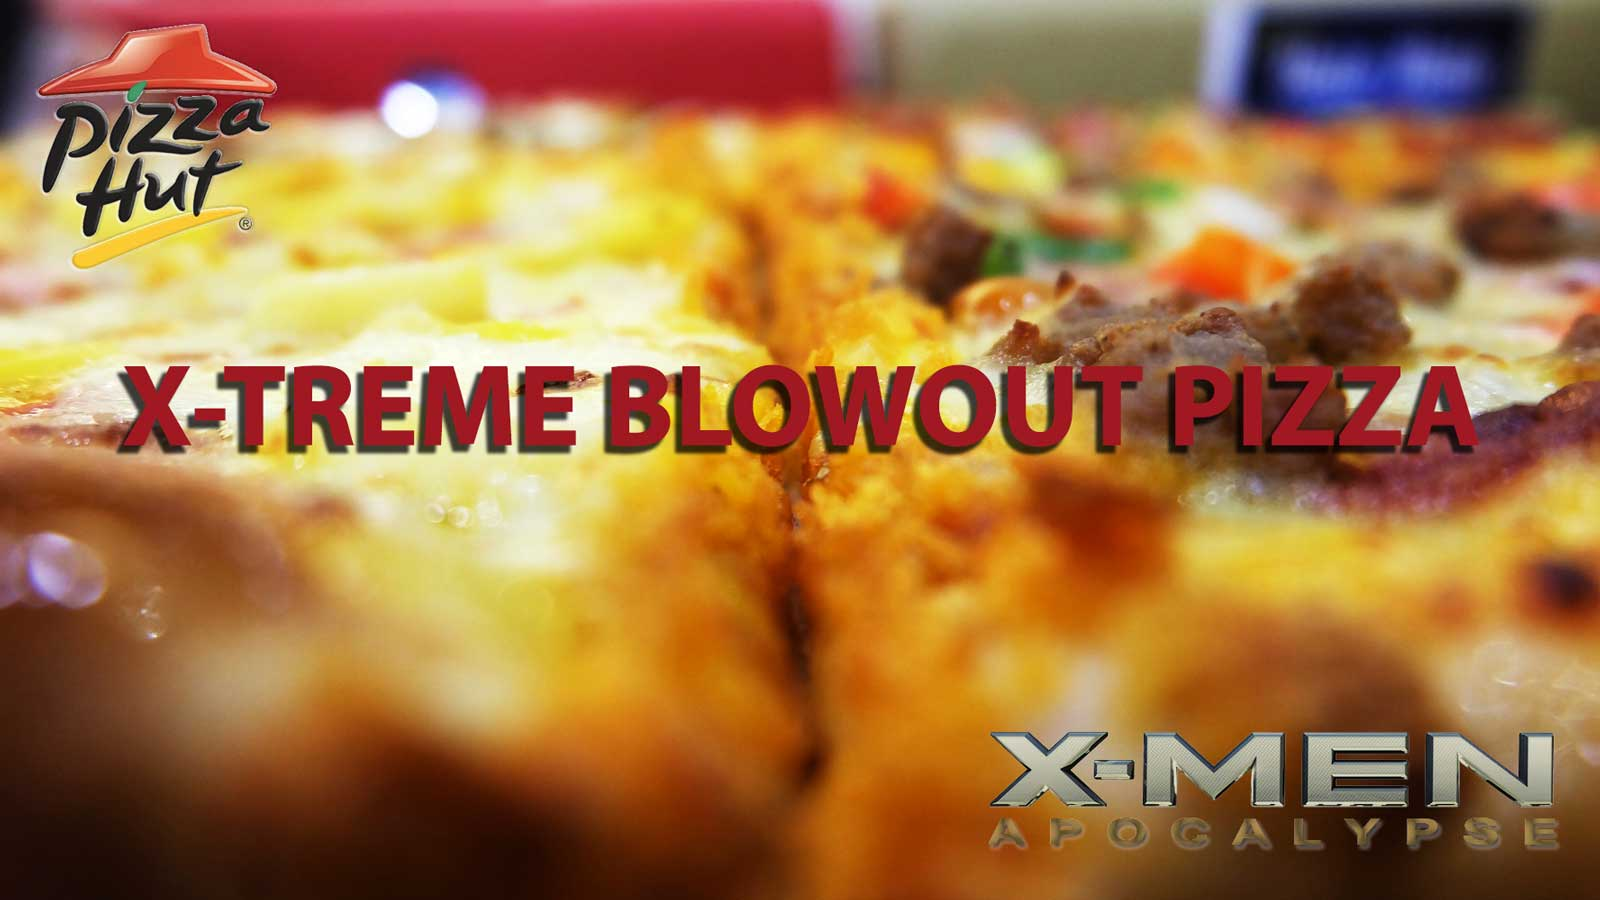 Pizza Hut introduces the Blowout Pizza